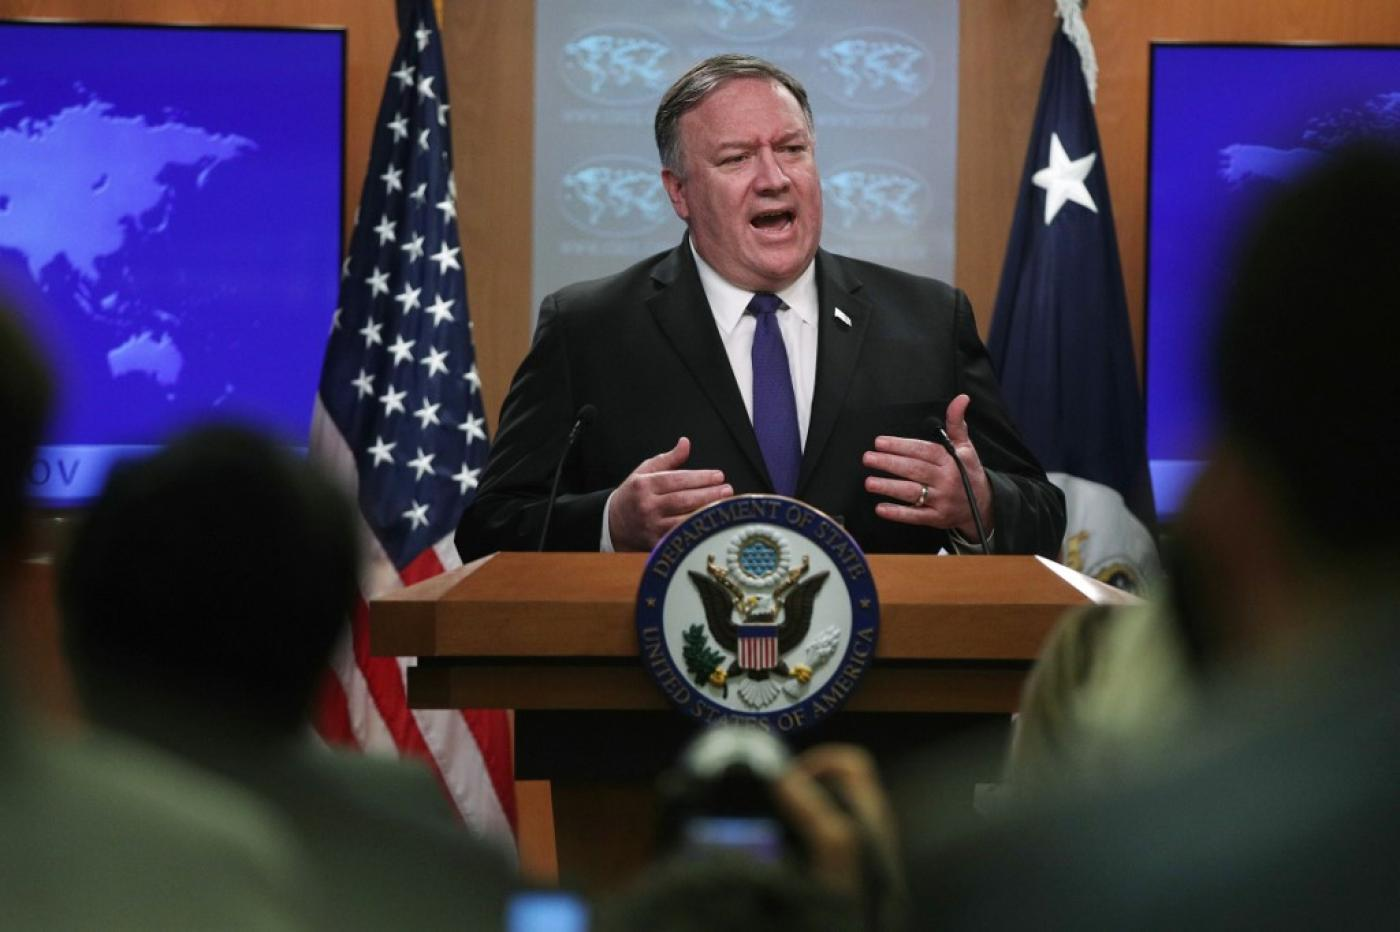 Pompeo said he was confident the Trump administration would make sure the UN embargo is extended.